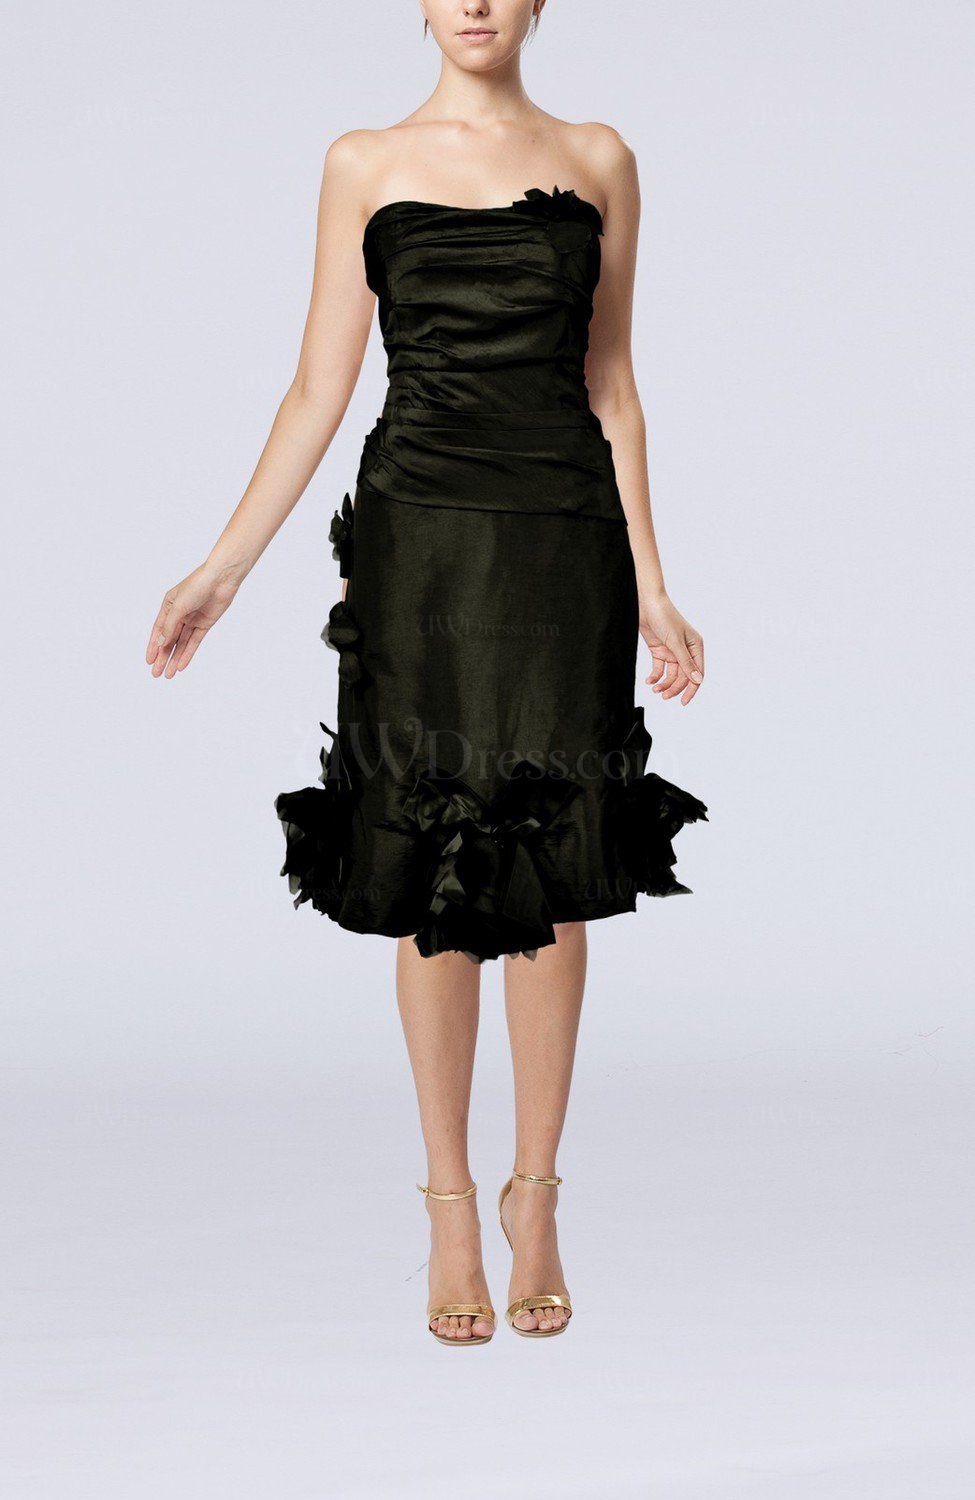 Formal cocktail dresses plus size - Style Jeans  |Dressy Cocktail